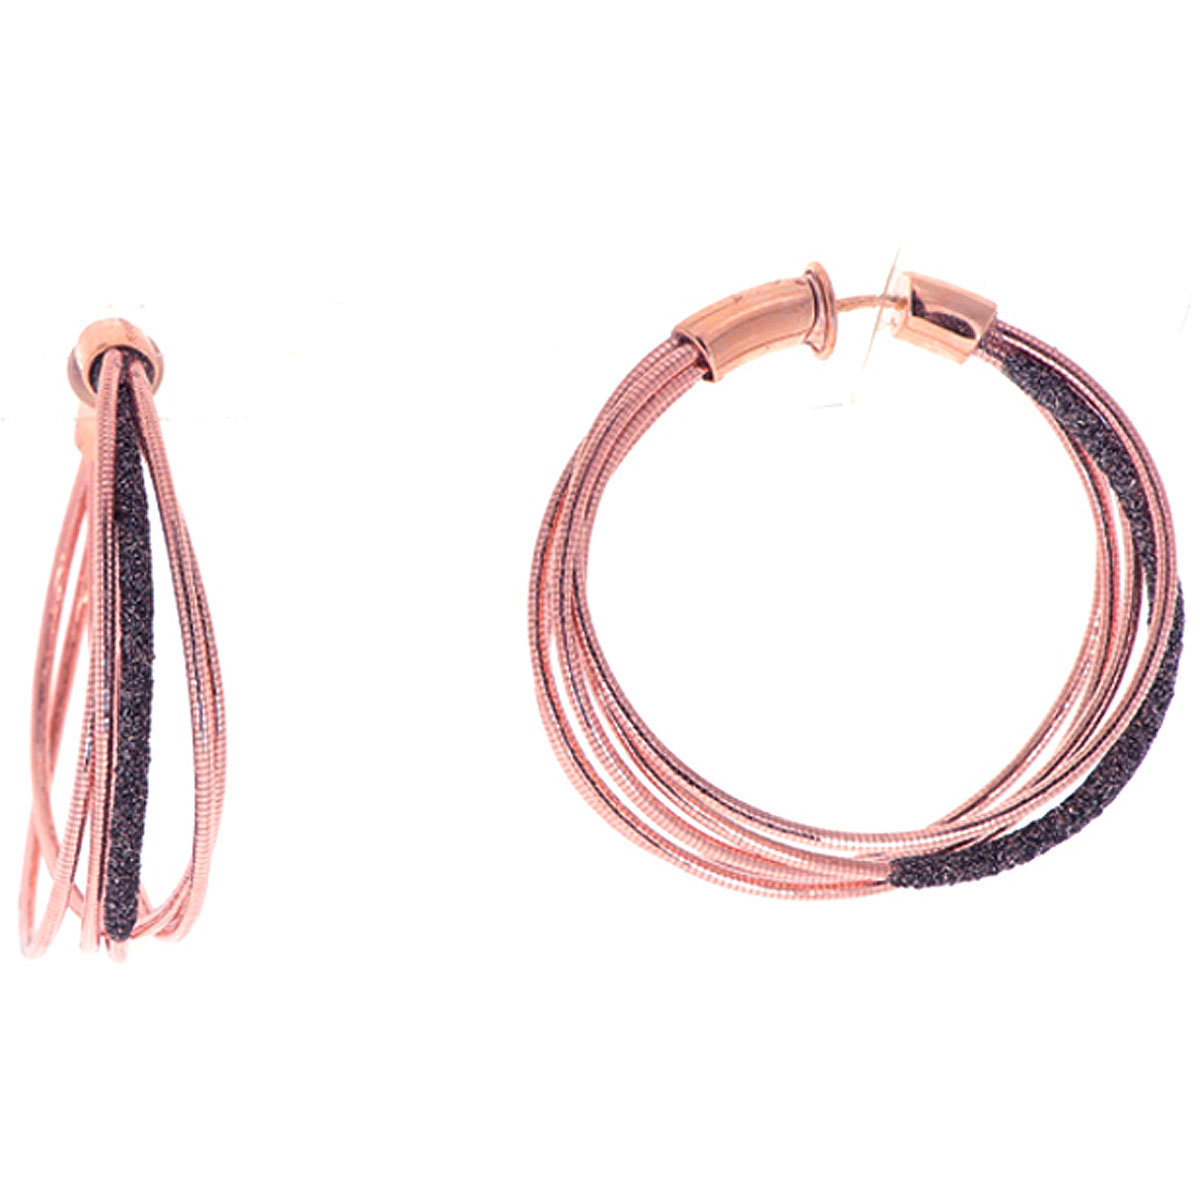 Pesavento Earrings for Women, Gold Pink, Silver 925, 2019